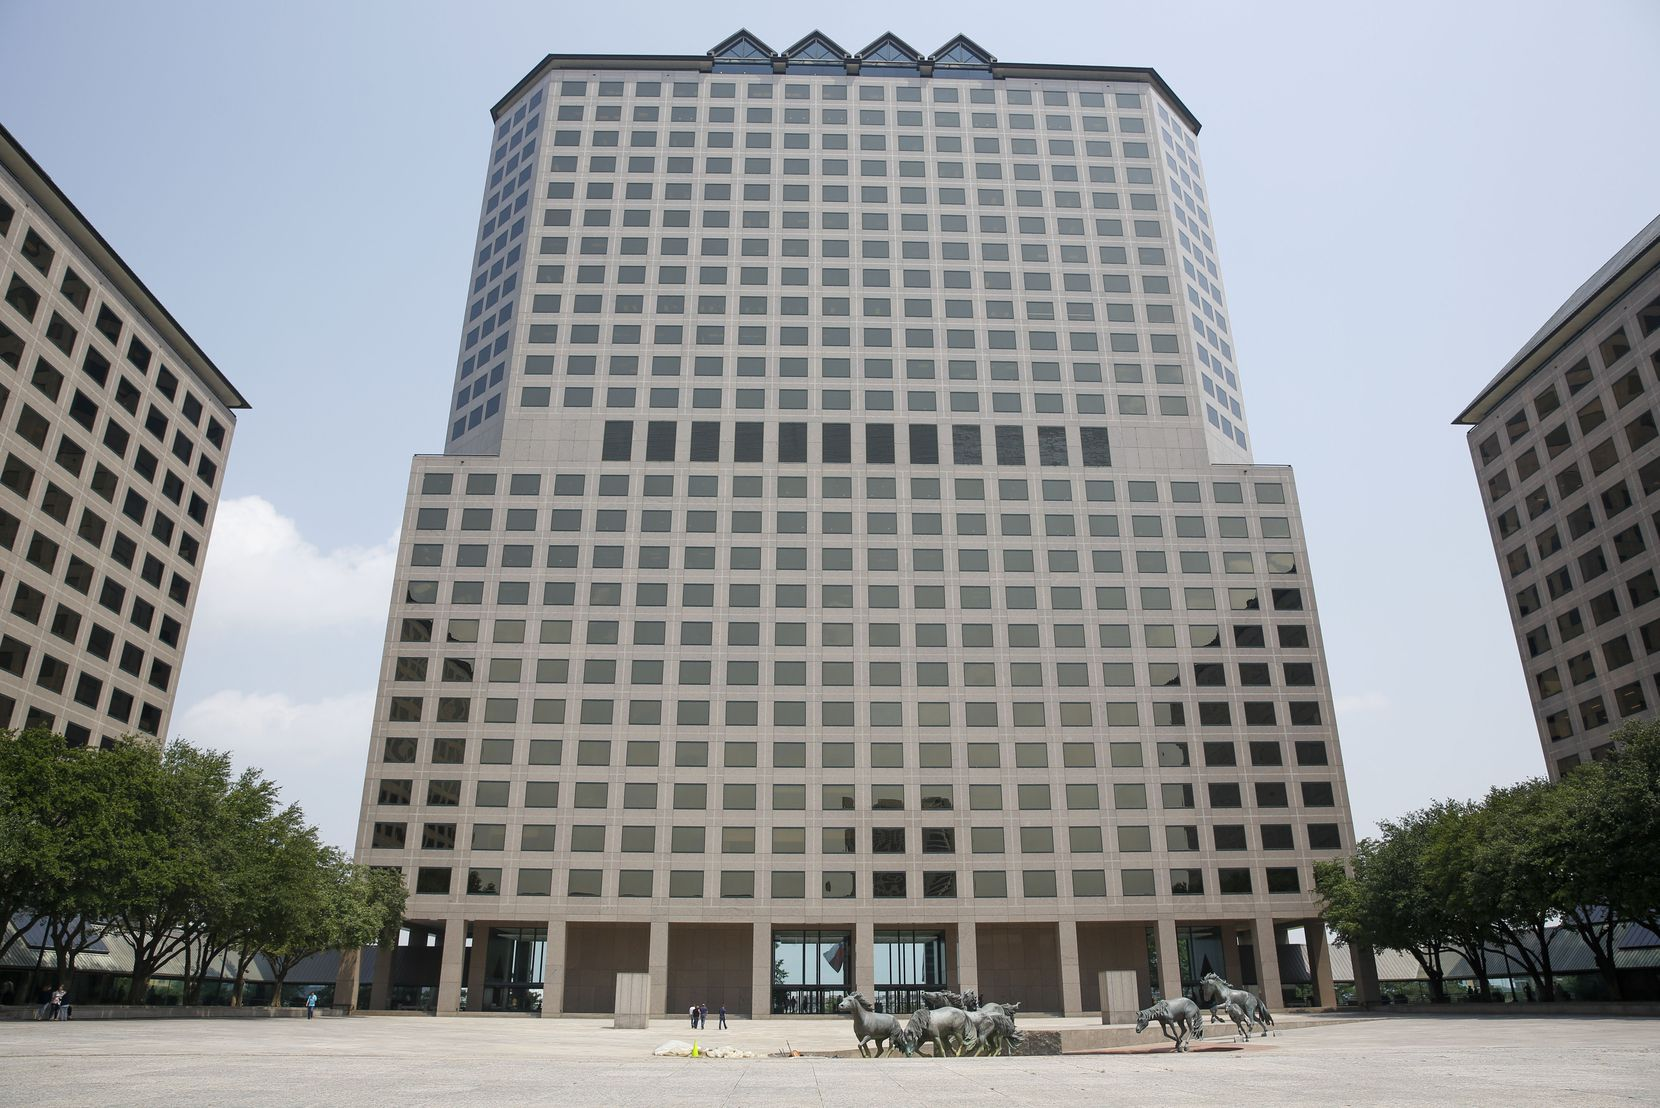 Caterpillar is locating the new Electric Power Division office in The Towers at Williams Square in Las Colinas.